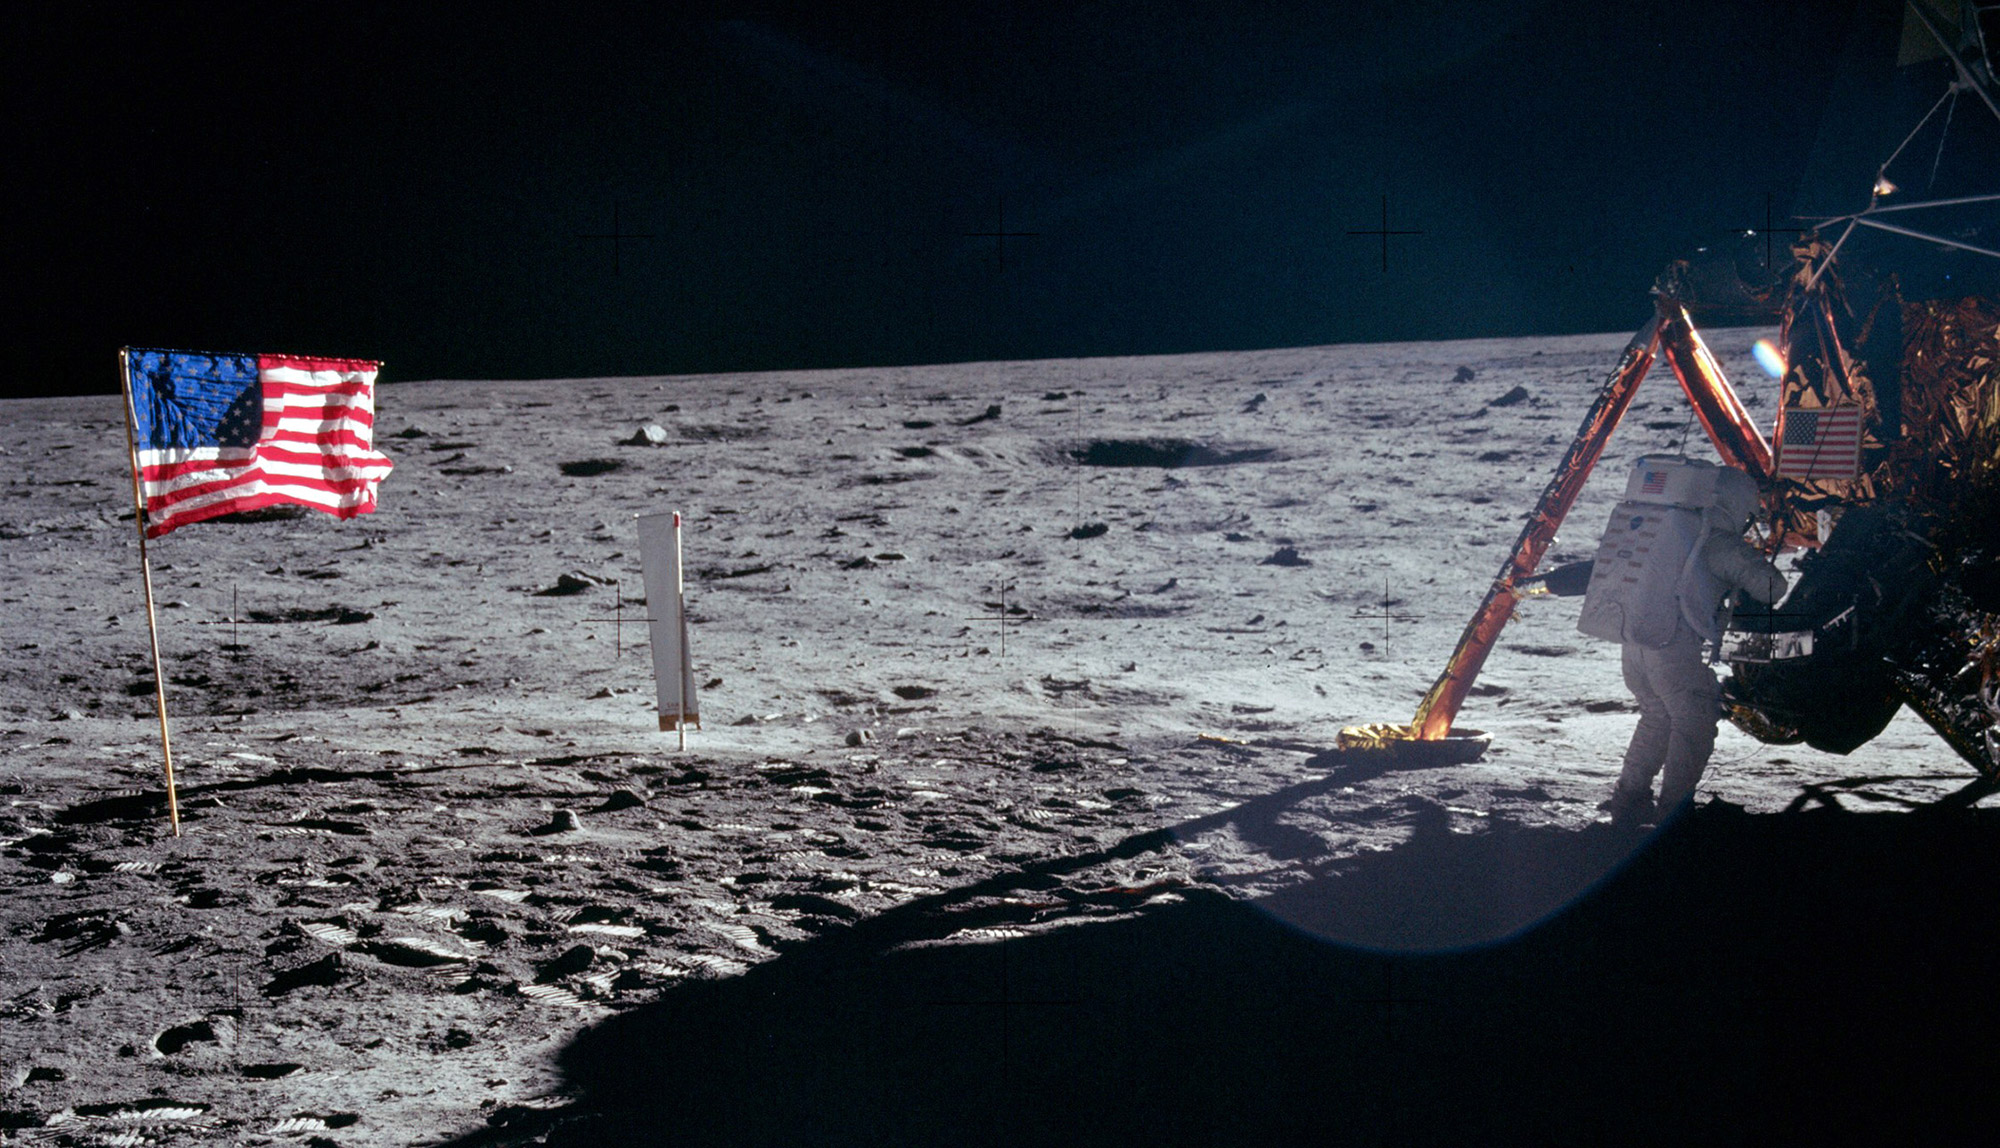 Apollo 11 marked mankind's first steps on a celestial body besides the Earth. Credit: NASA